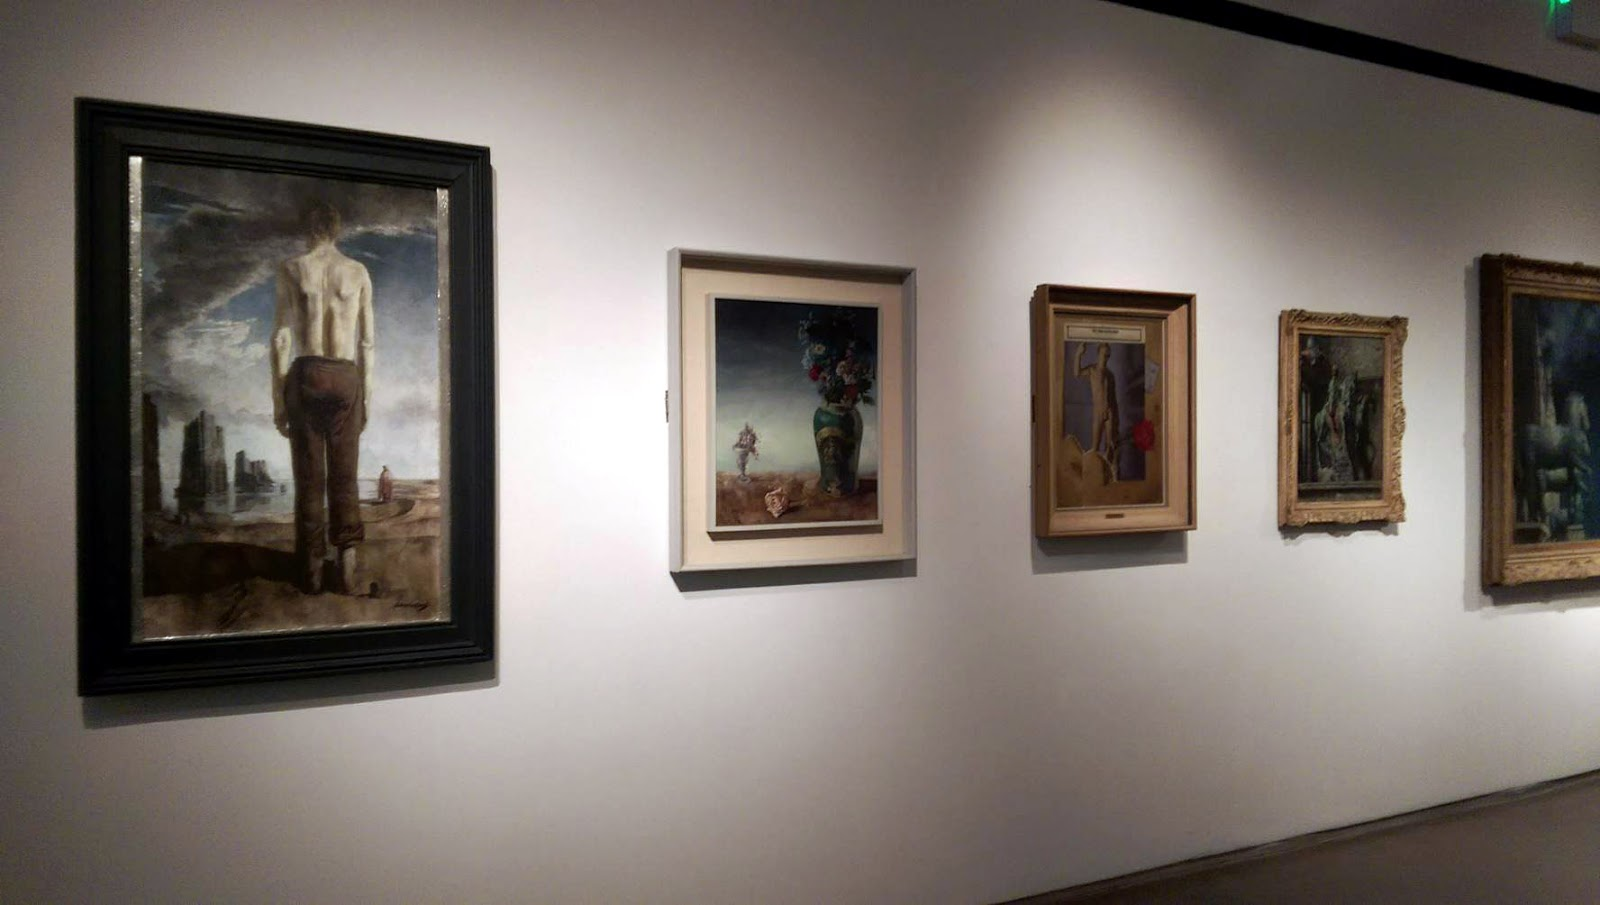 gallery visit essay leaving cert A visit to an art gallery question –sample answer and information here are  points but you should write it out in essay form & you should never re-write it  directly.